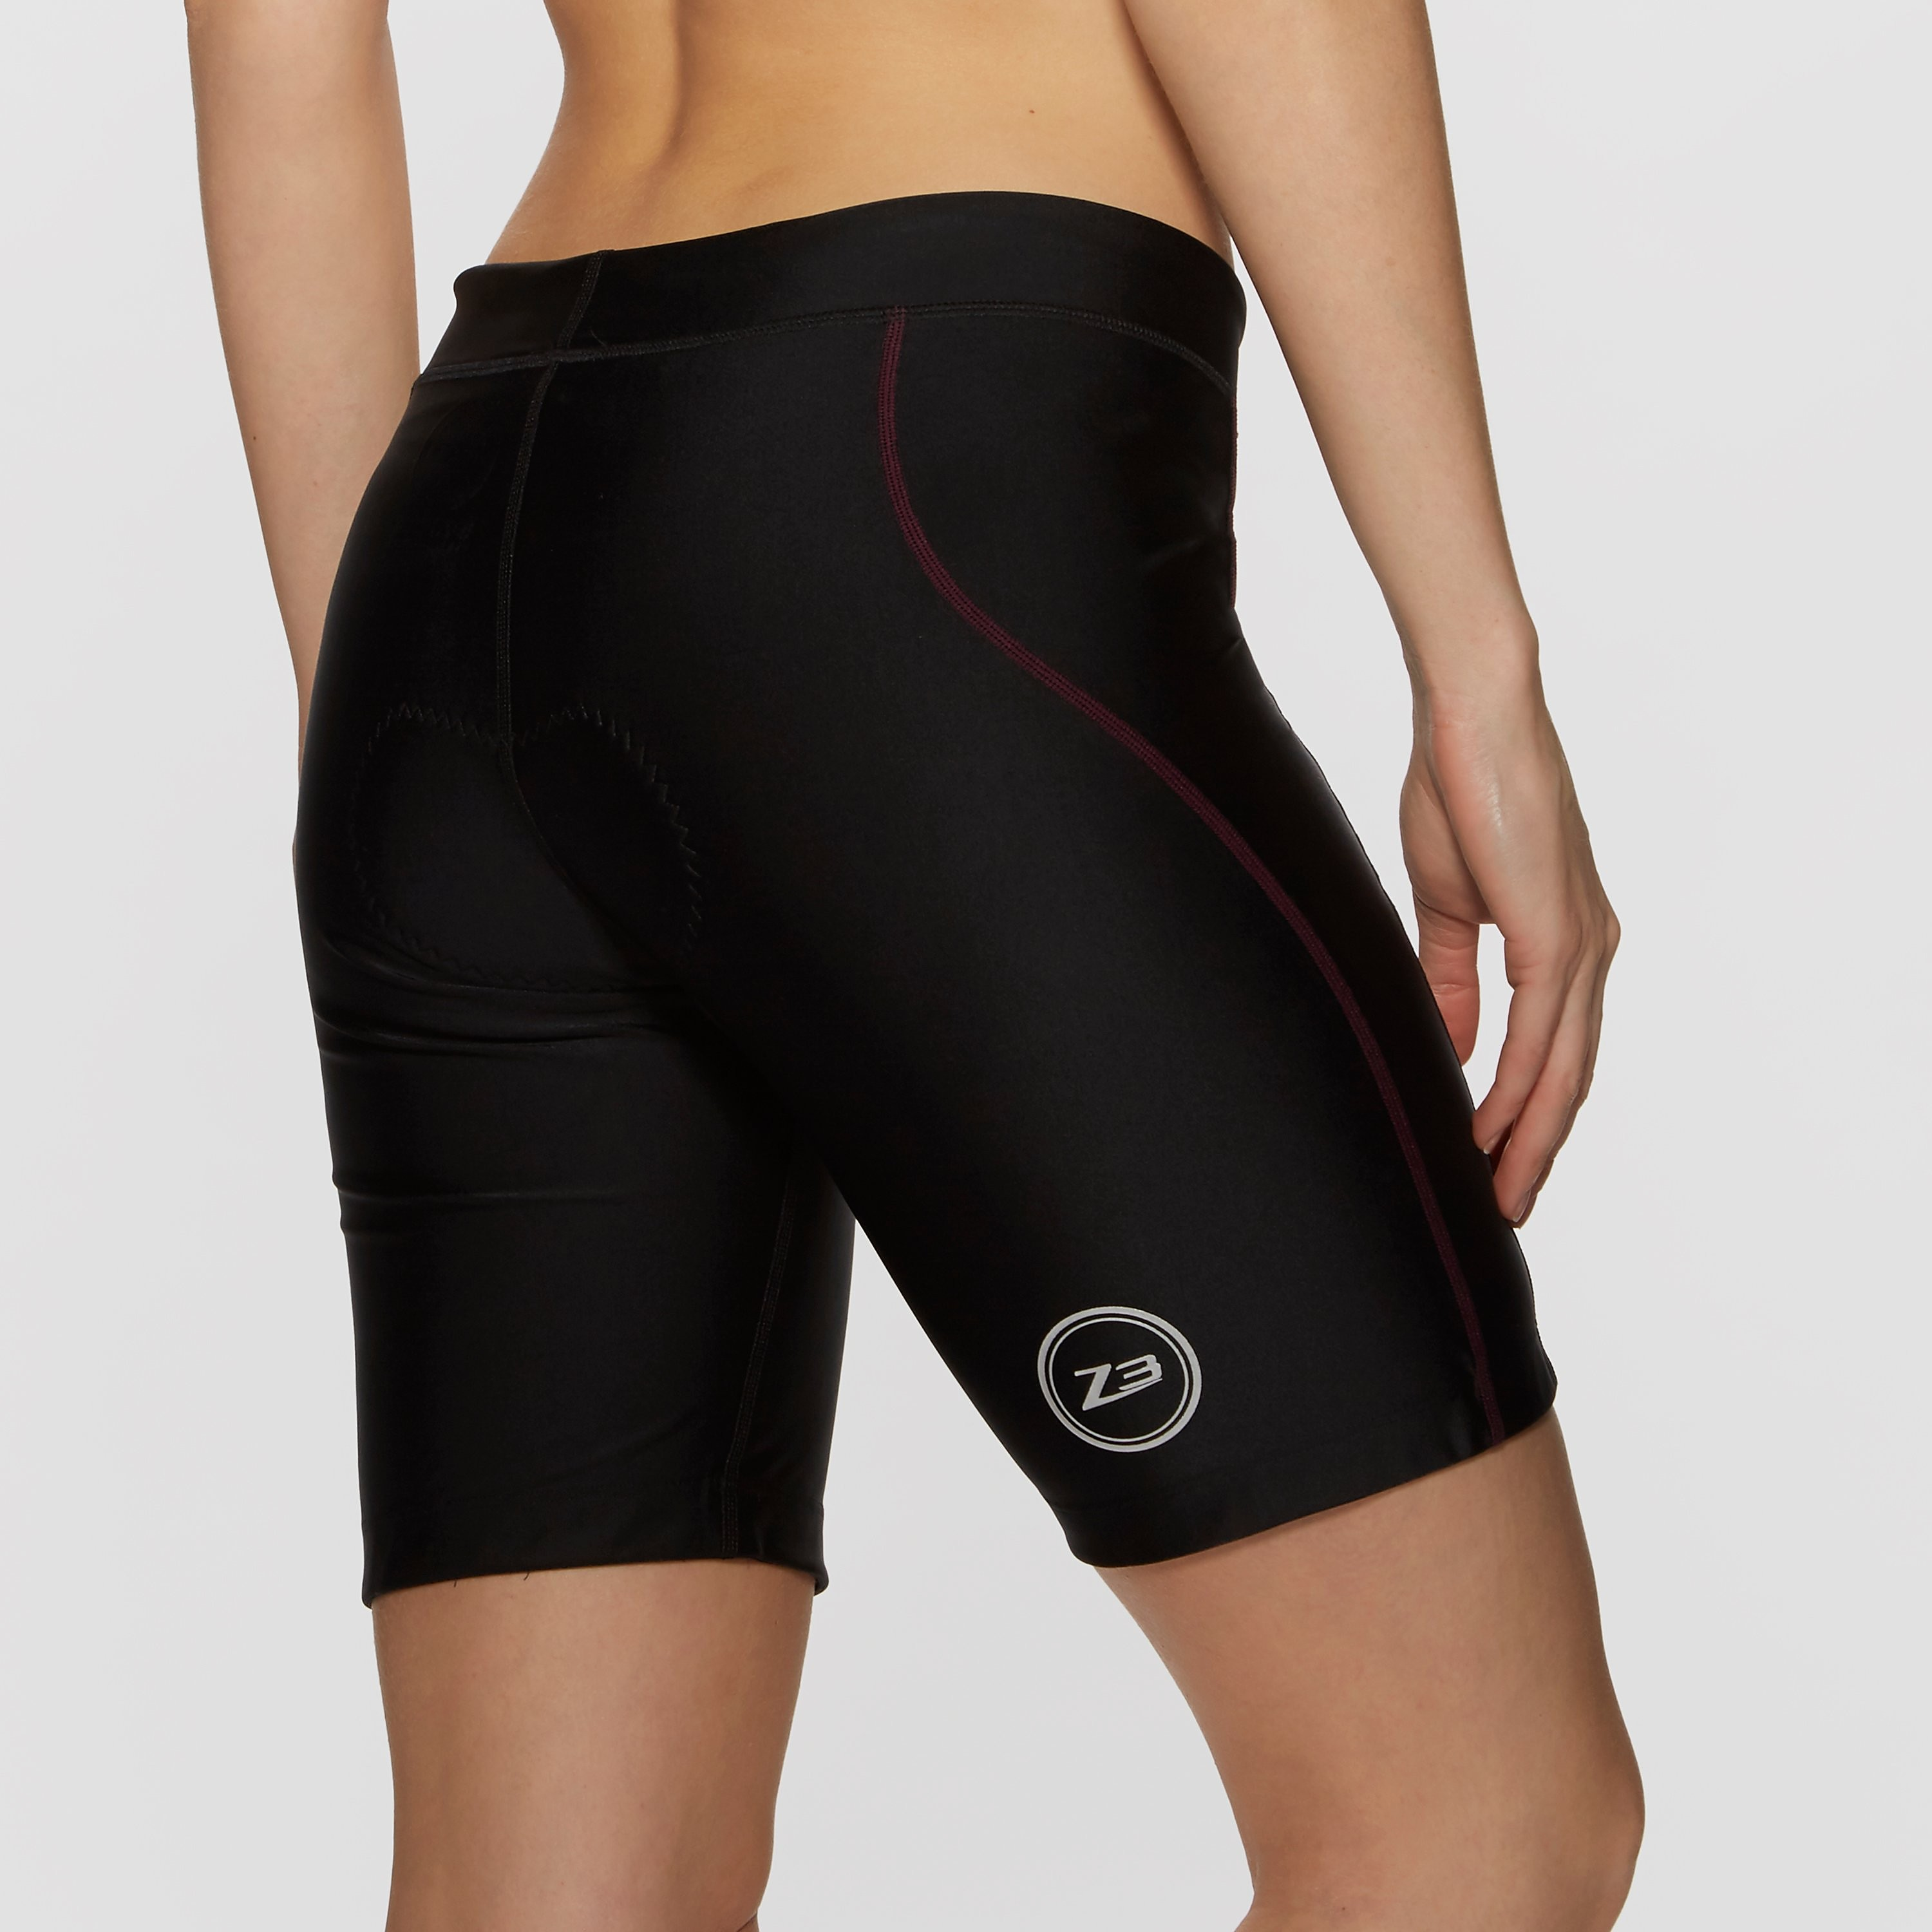 Zone 3 Activate Women's Triathlon Shorts